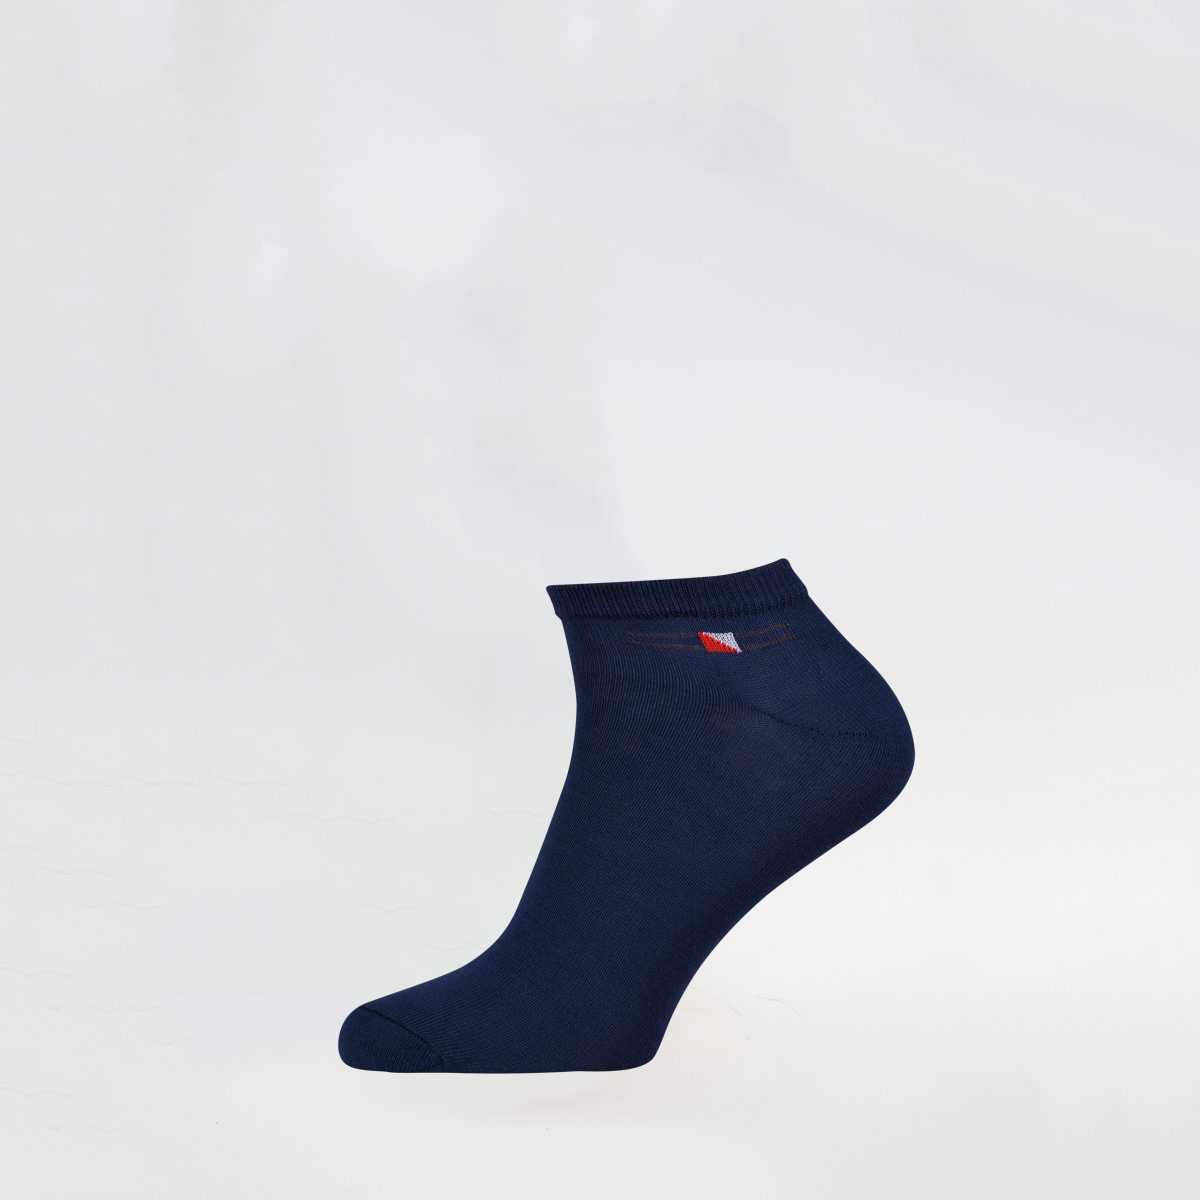 Ankle cotton socks for men and boys